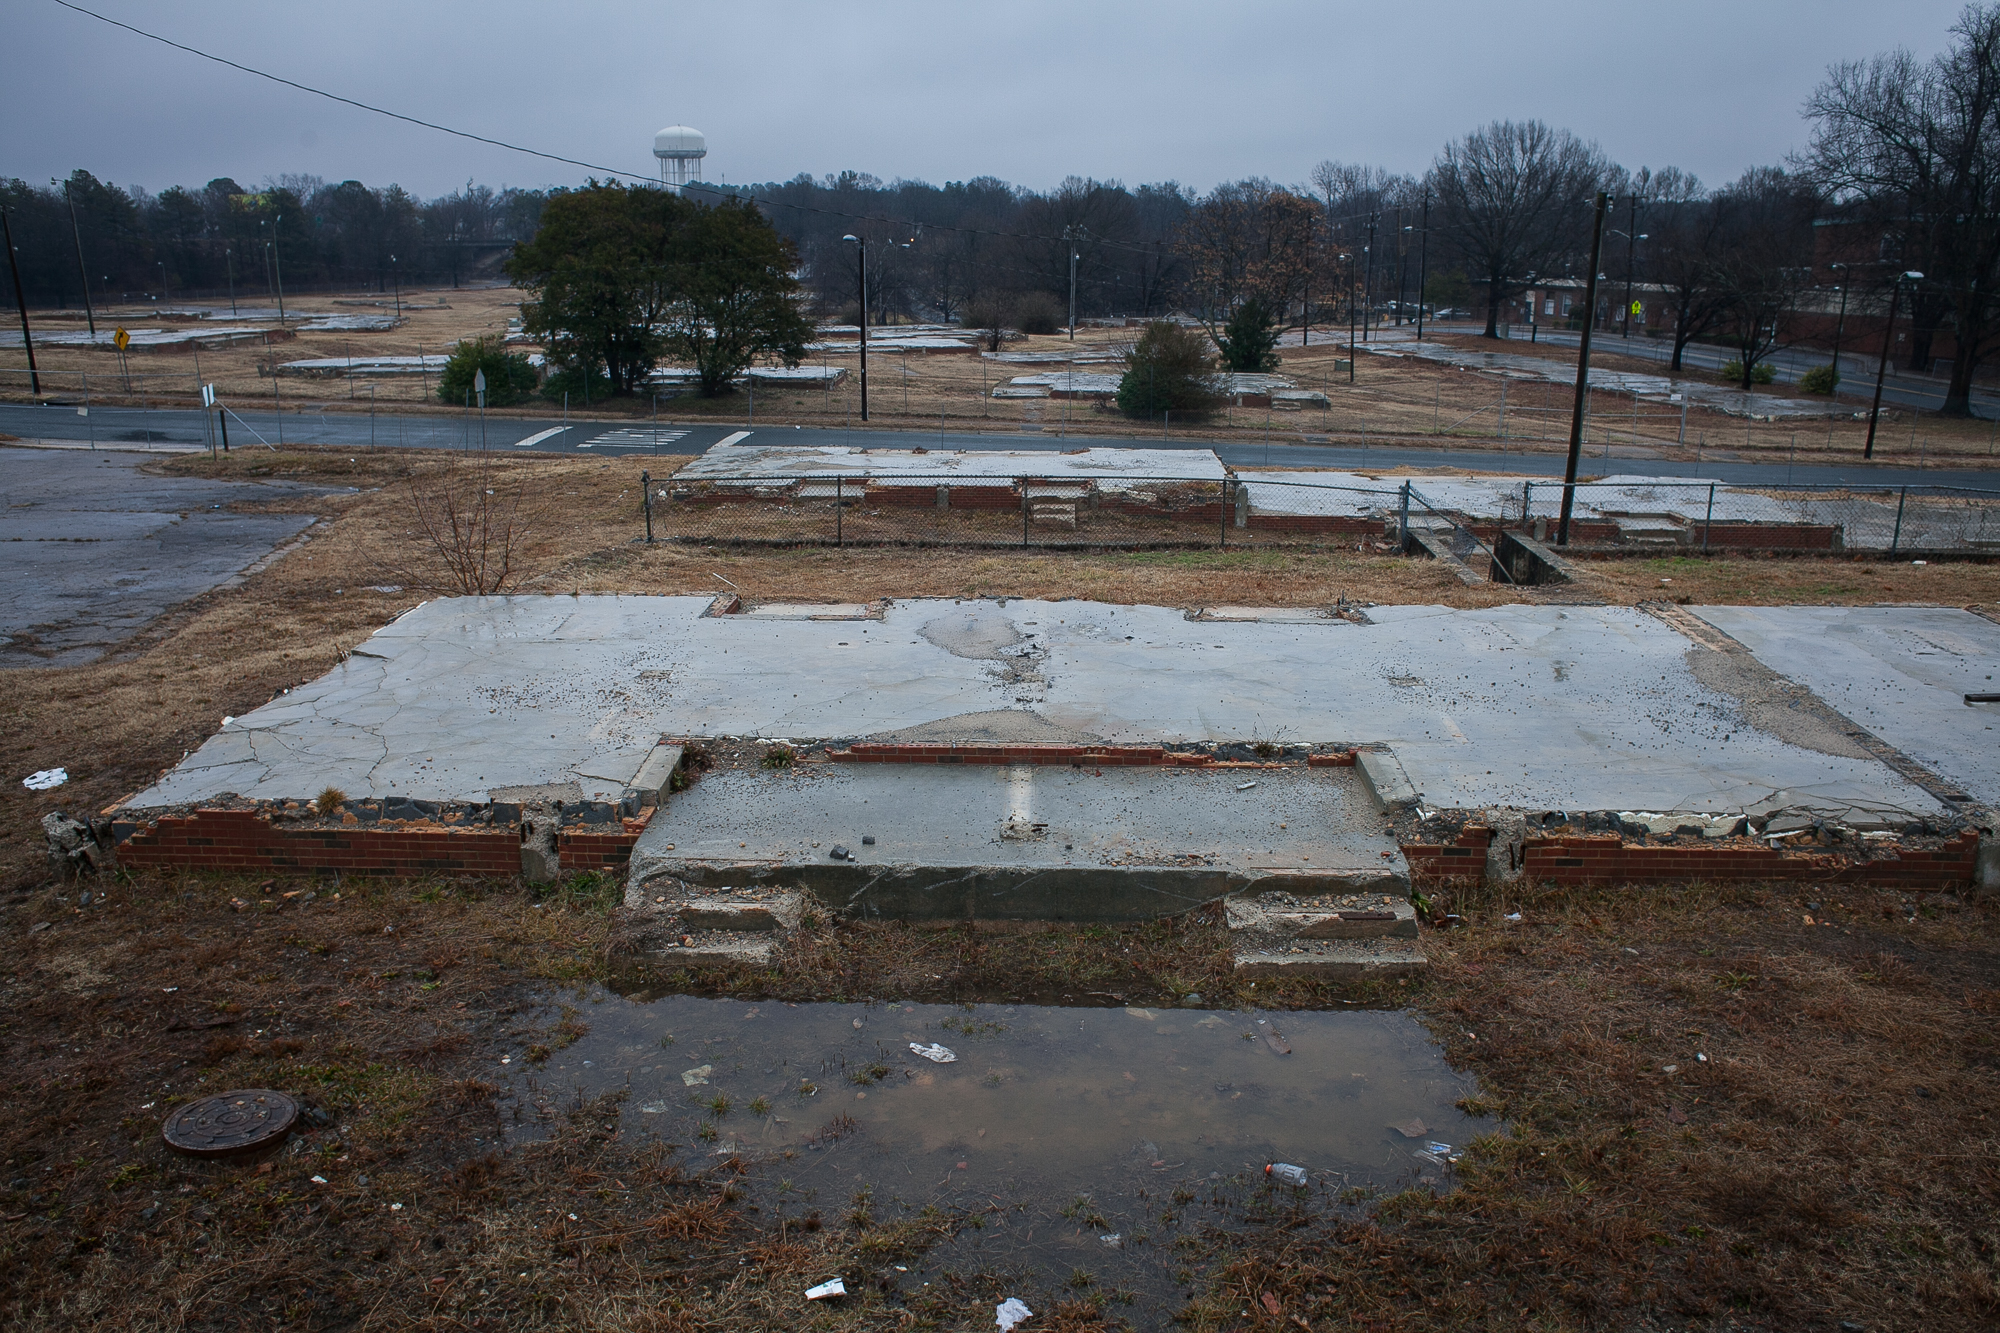 The remains of Fayette Place public housing project on Fayetteville Street in 2011. The 20-acre property, which used to be home to low-income families, has been vacant since 2007. The property was purchased by a developer that planned to turn it into affordable housing for N.C. Central University students. But by 2015, nothing has been done with the property where 200 apartments once stood. There is an acute affordable housing shortage in Durham County, and fewer low-income, working-class families can find a home. There are 8,358 total subsidized units in the county, but only 111 available according to Durham County Open Data from February, 2015.